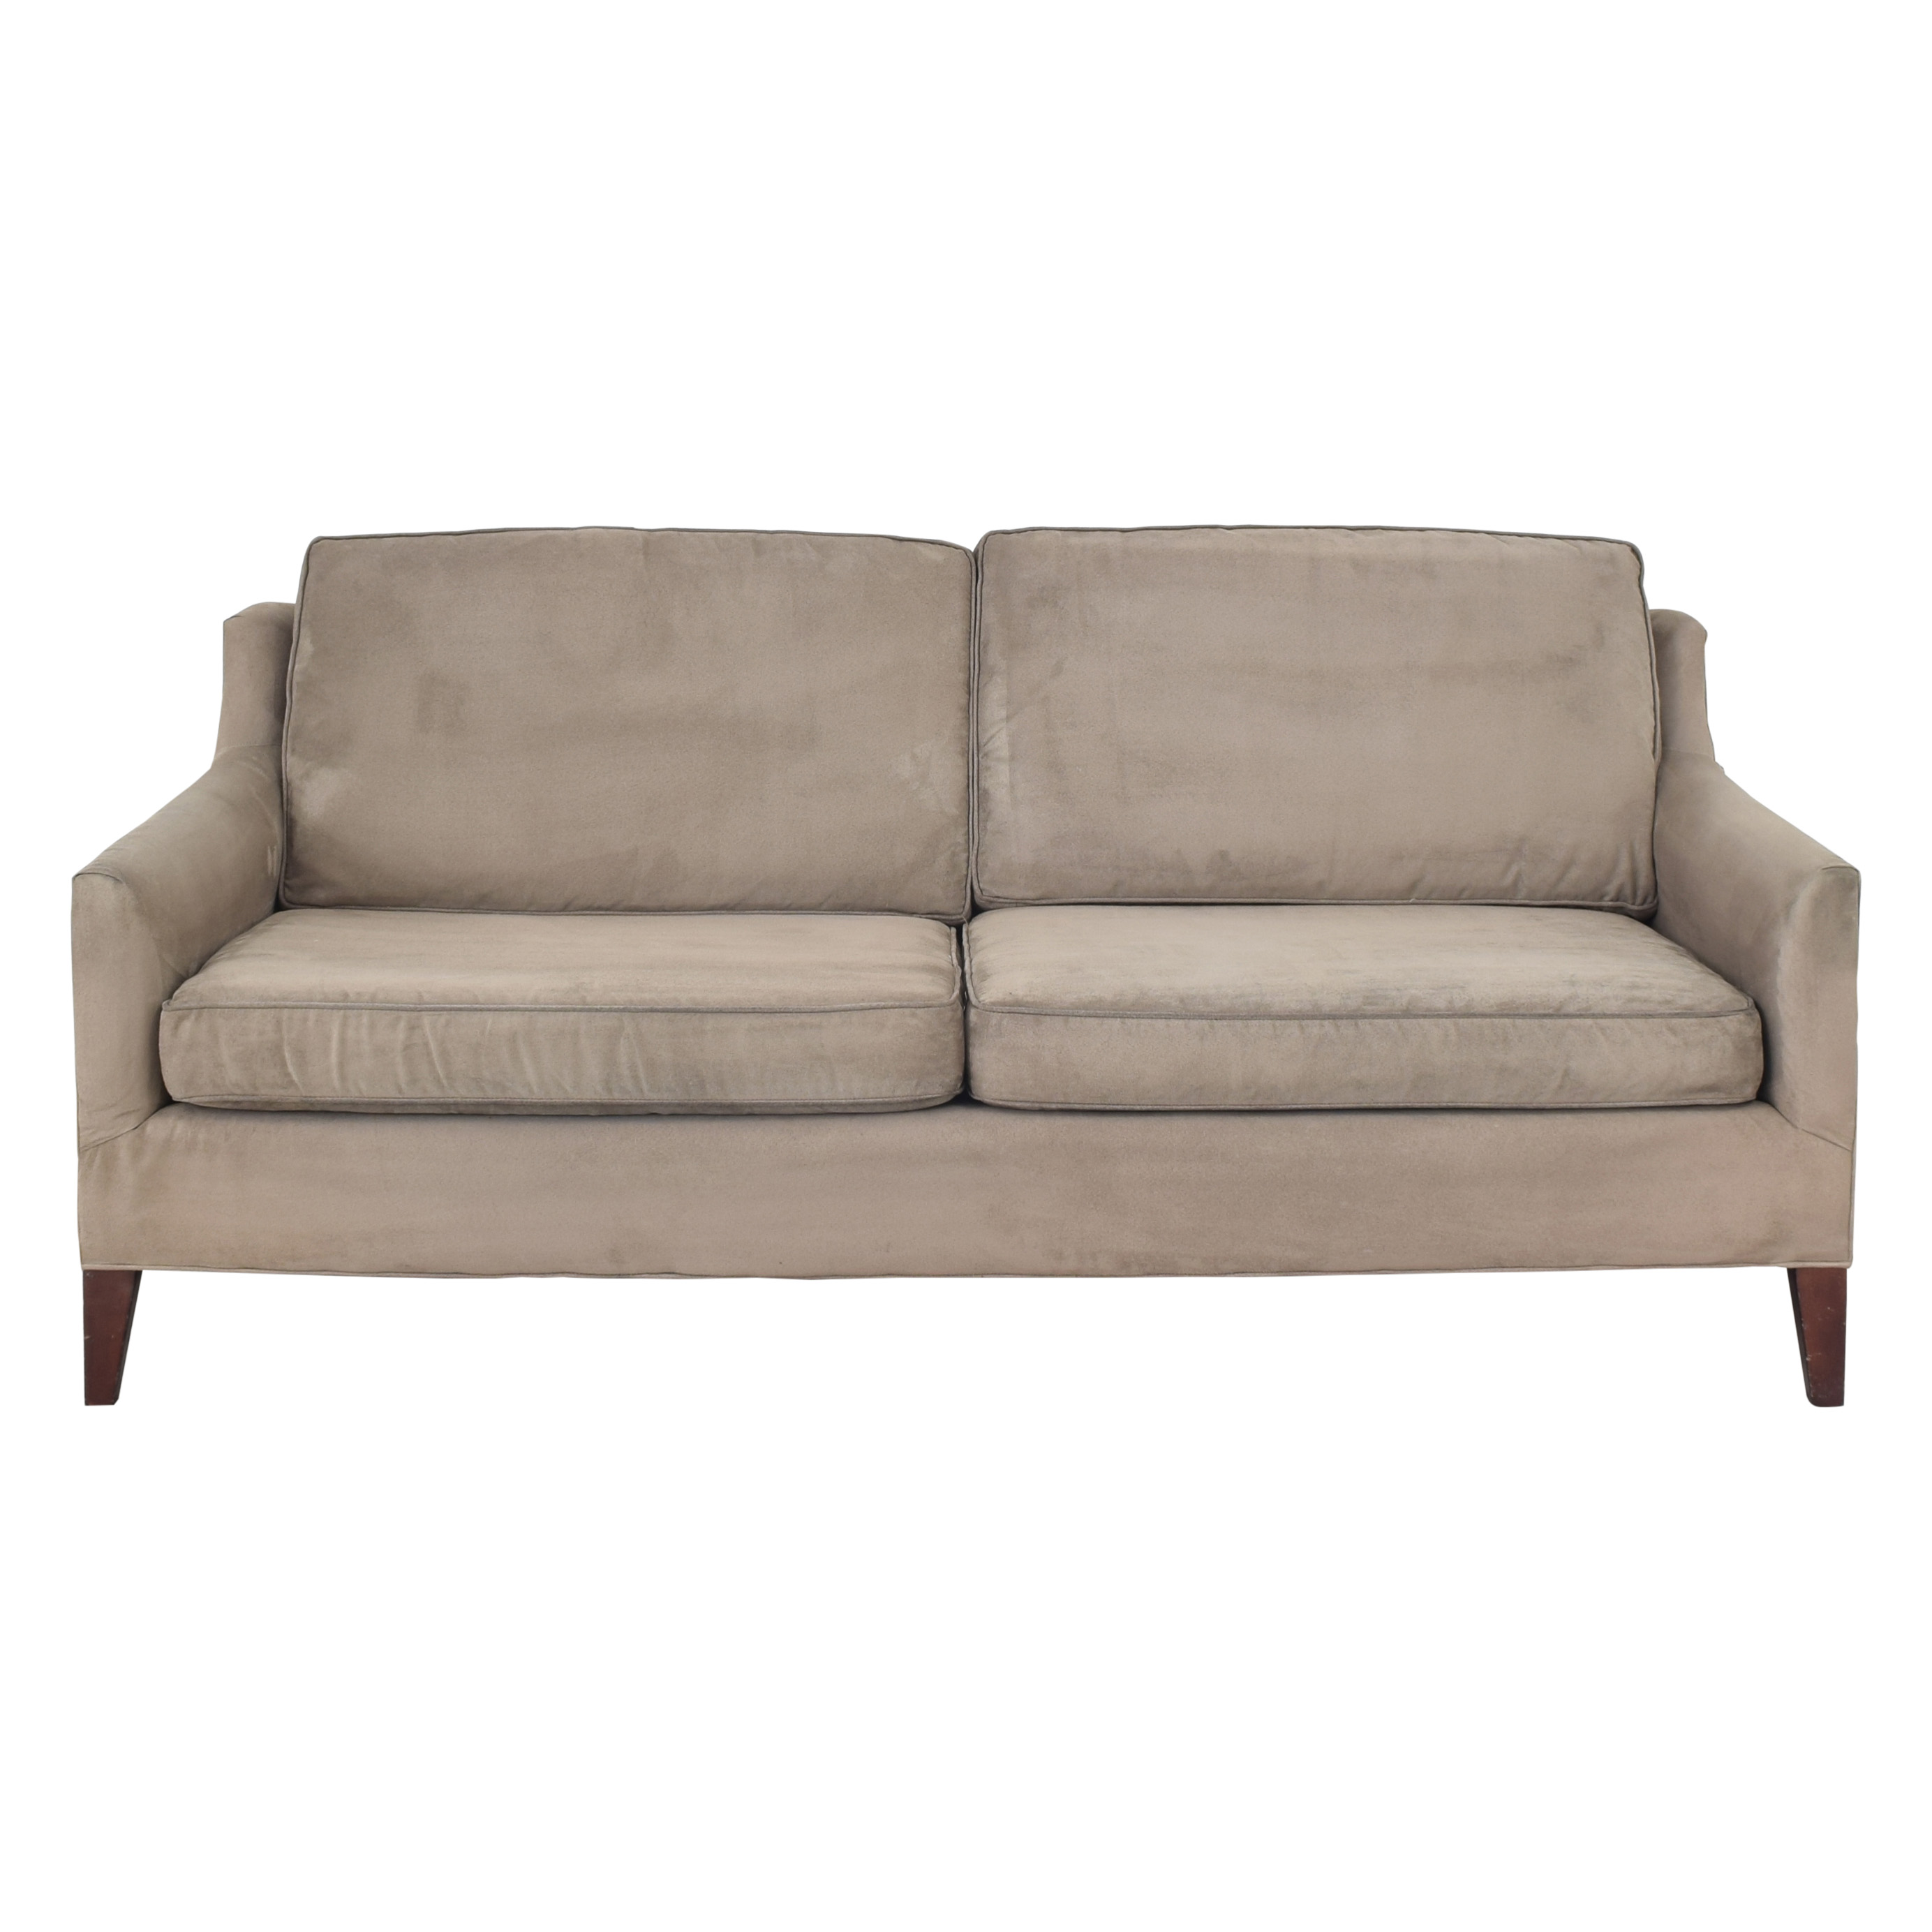 buy Mitchell Gold + Bob Williams Mitchell Gold + Bob Williams Taylor Apartment Sofa with Ottoman online